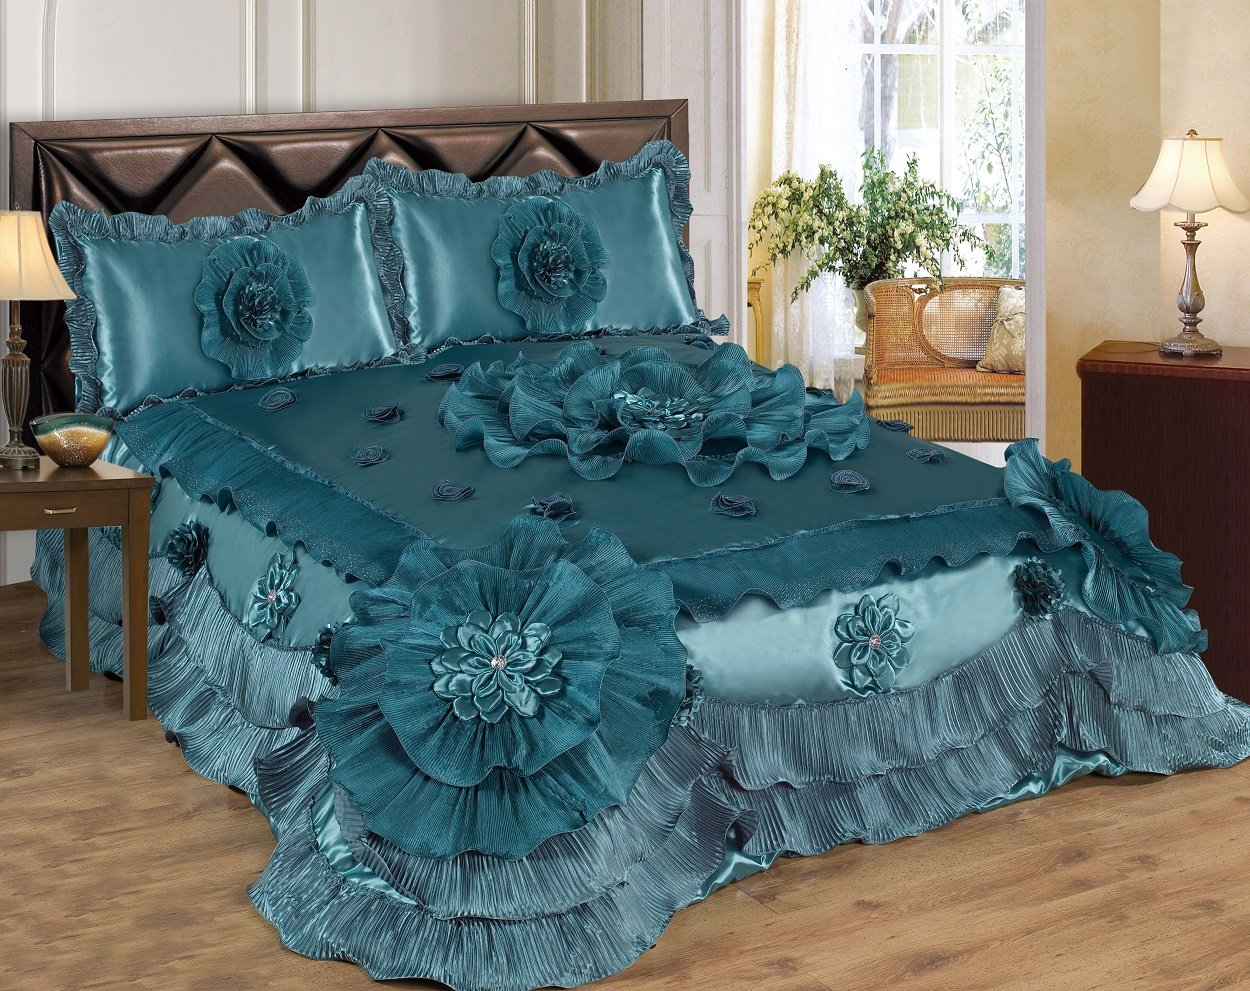 duvet covers navyblue fieldcrest excellent bedroom at comforter along ideas set luxury remarkable sightly size solid with bedding regal black unusual piece cover blue queen son plus king embossed of then oversized sets full